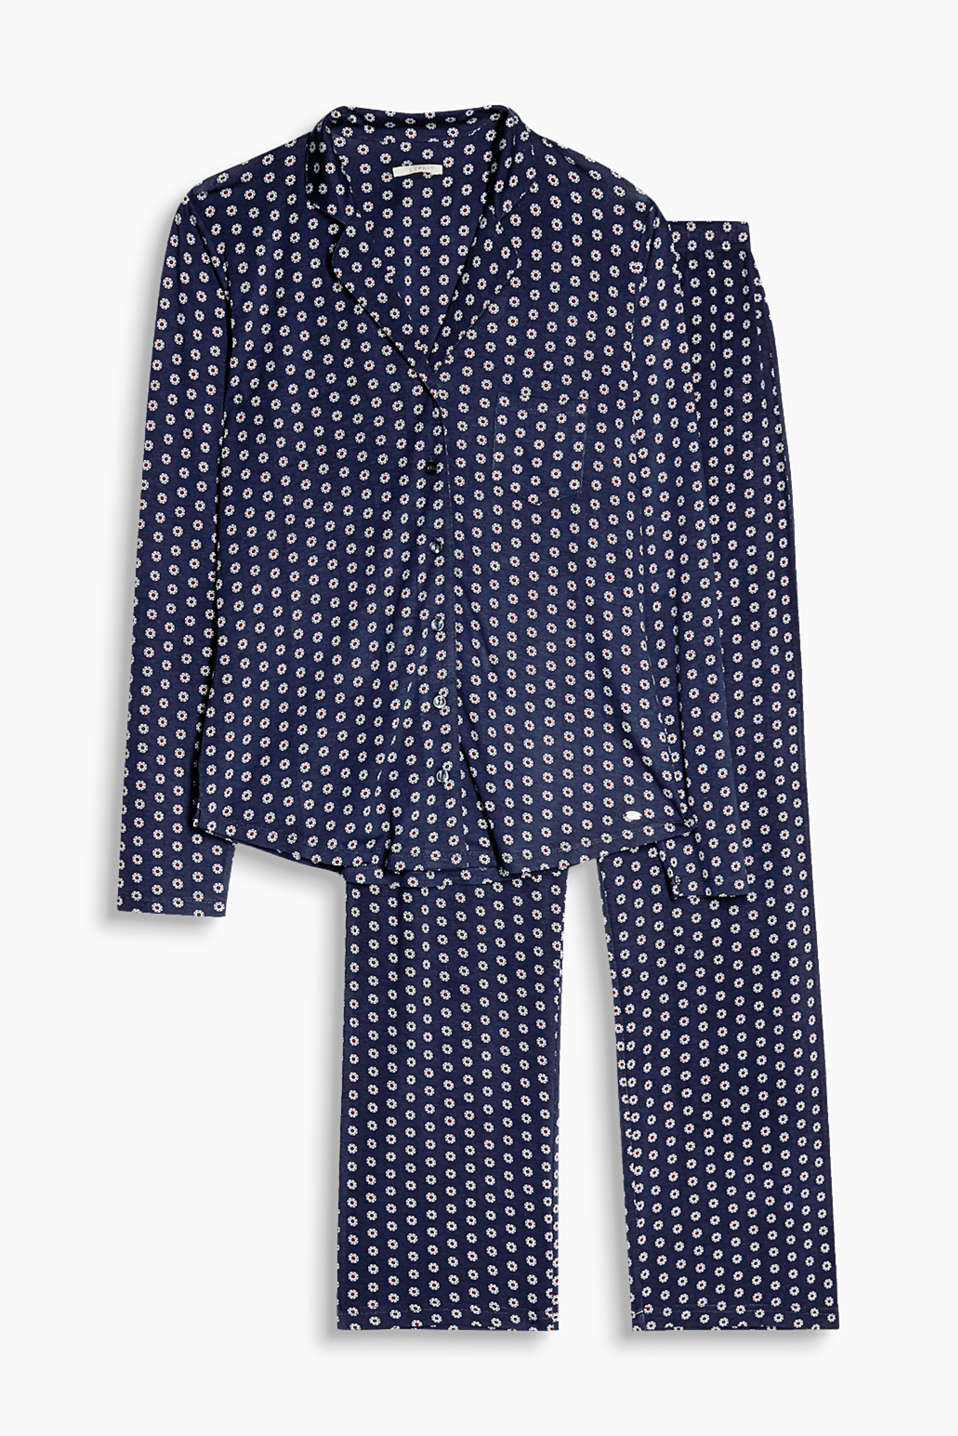 Boyfriend-style pyjamas made of softly draped stretch jersey with a fashionable, minimal print